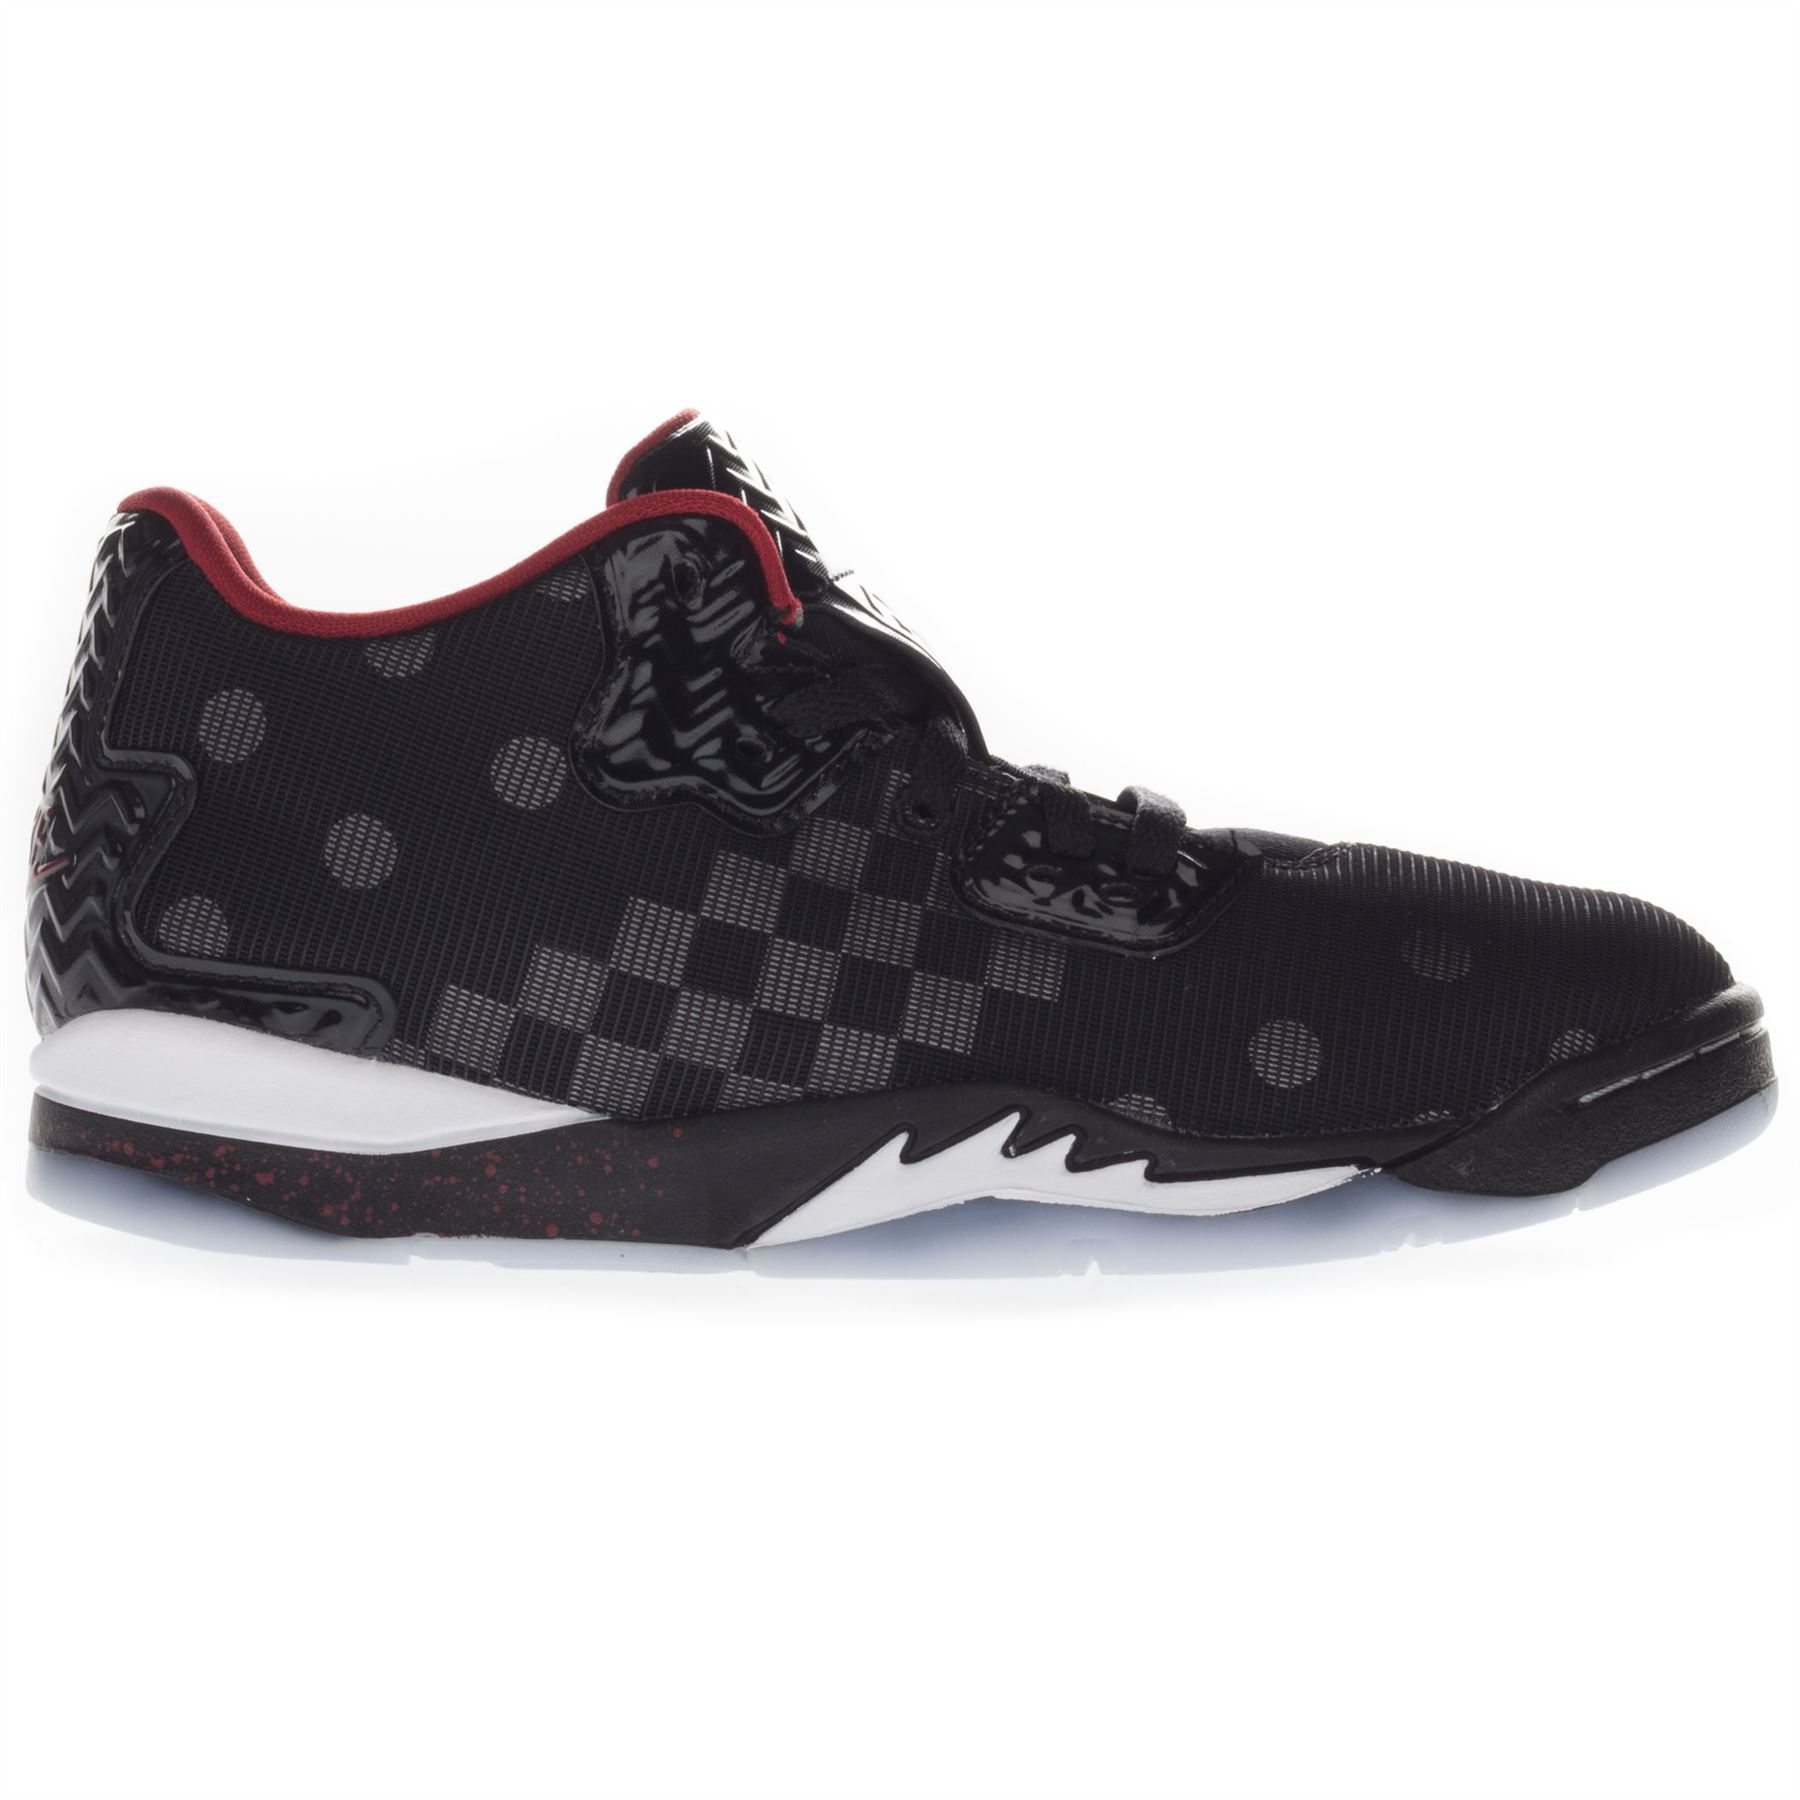 Nike-Youth-Child-Air-Jordan-Spike-Forty-Low-